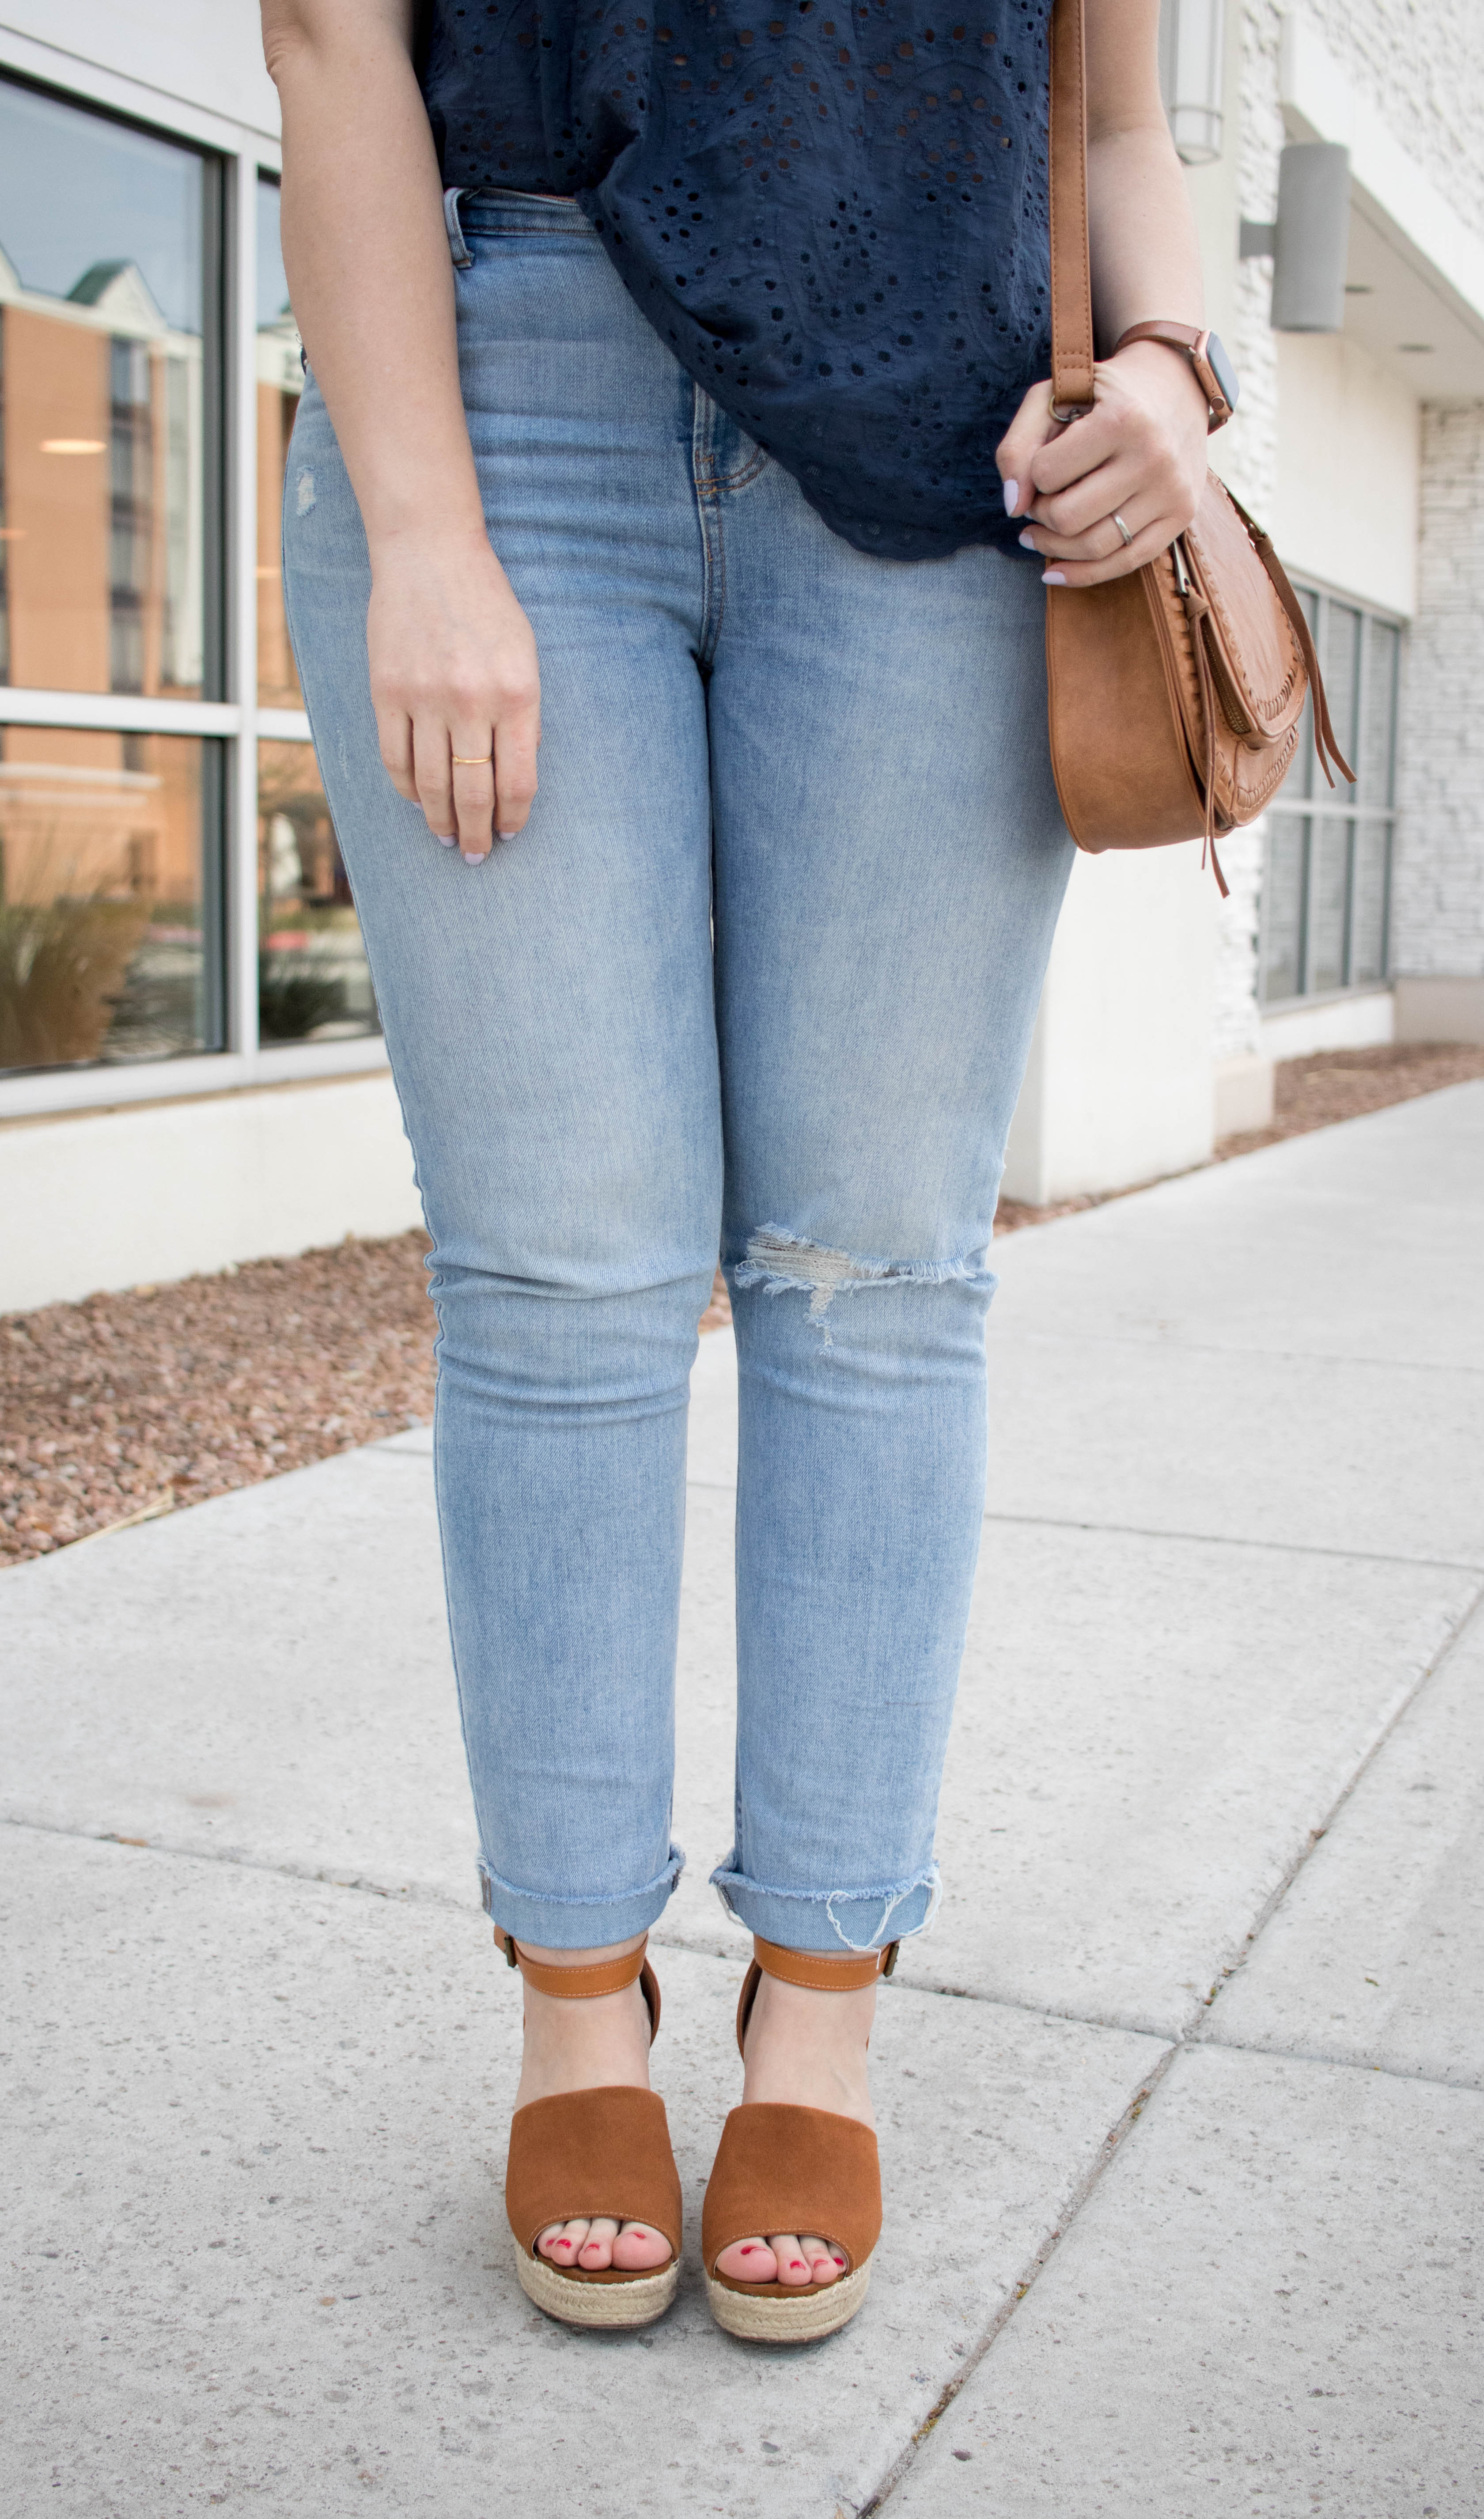 old navy power jeans outfit #oldnavy #oldnavystyle #boyfriendjeans